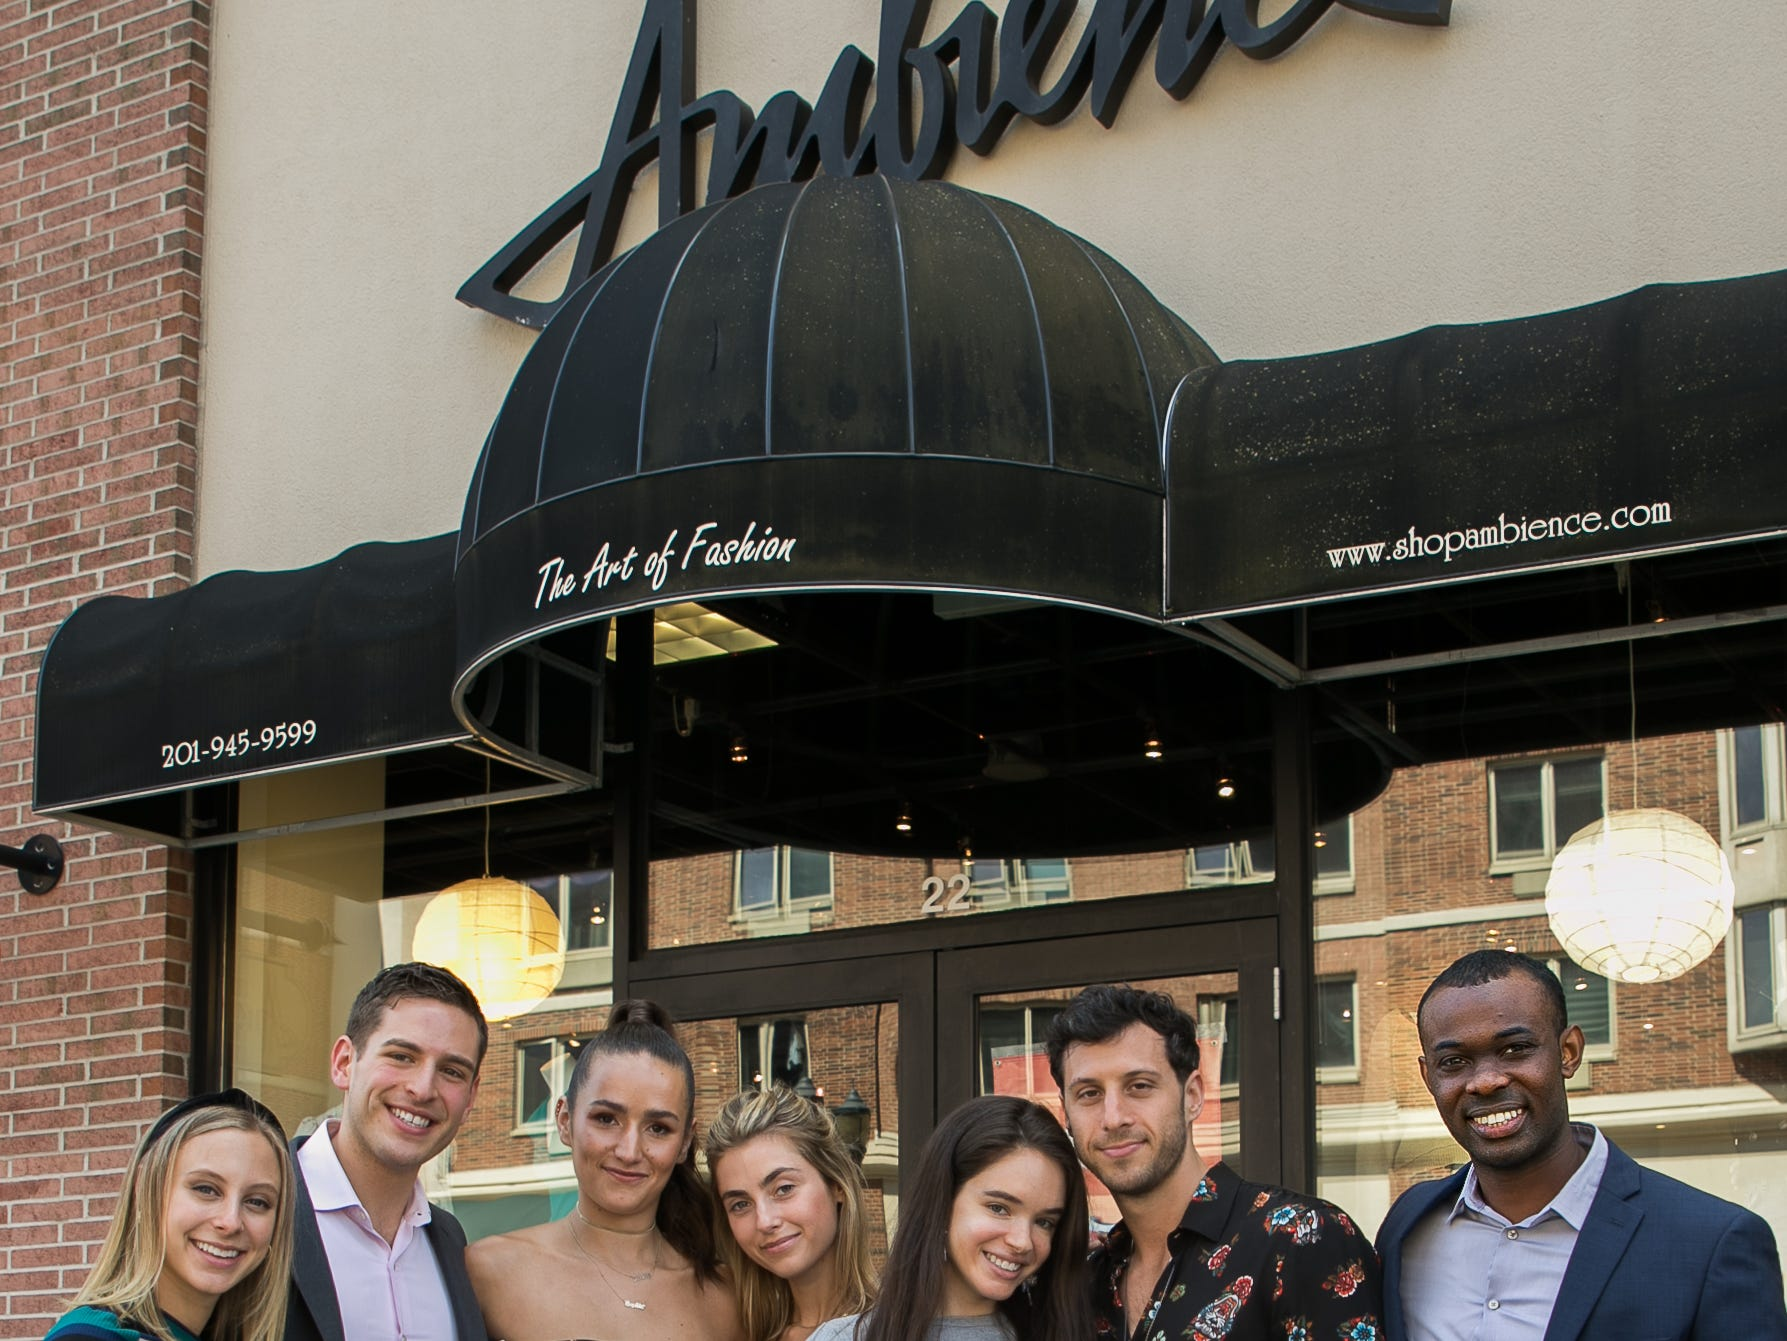 Madison Steiner, Jason Ovryn, Emma Demar,Sophie and Charlotte Bickley, Matt Trauner, Aaron Walters. Instagram fashion stylists sisters Sophie and Charlotte Bickley visited Ambience Boutique in Edgewater. 04/13/2019